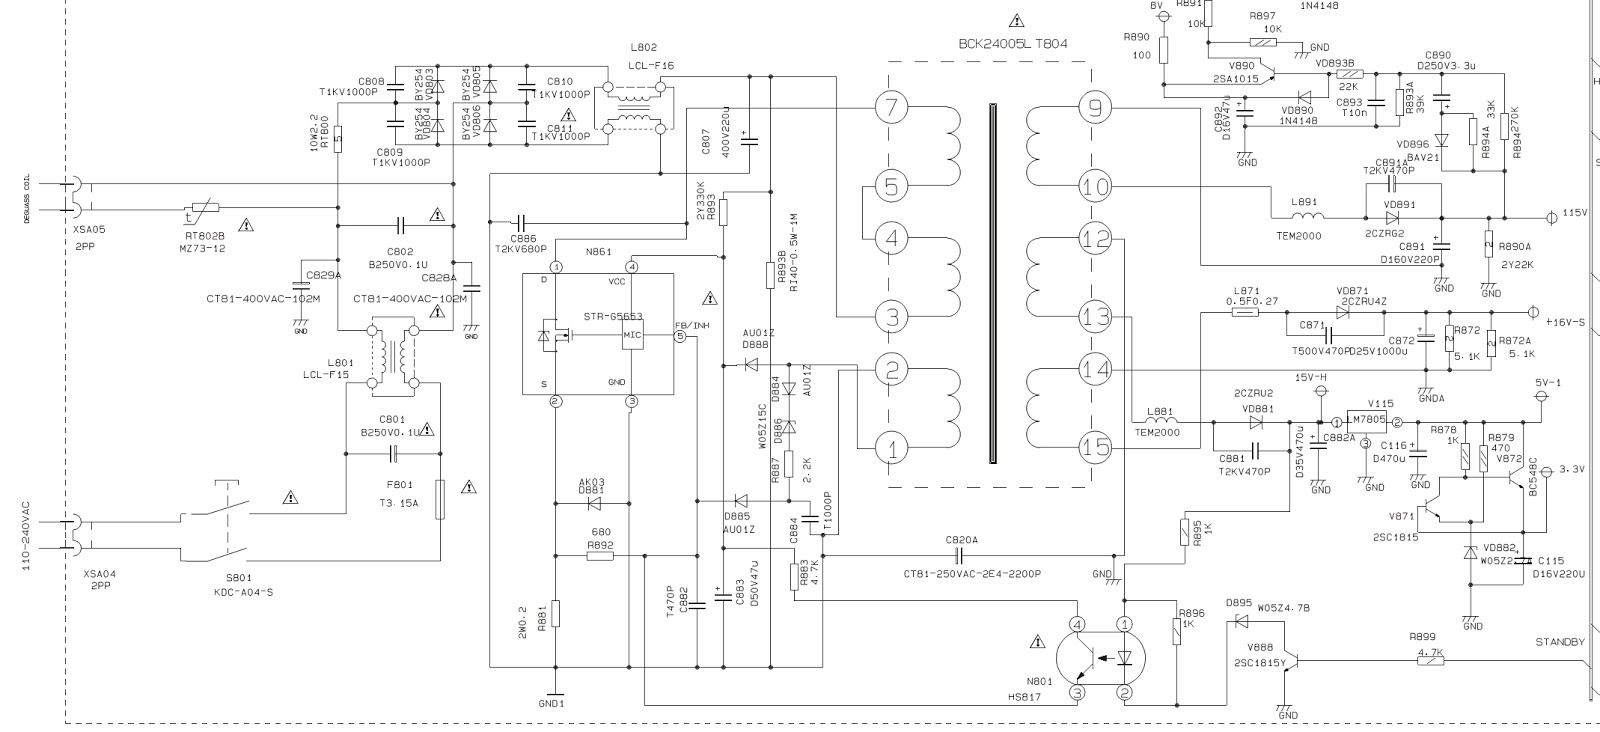 Diagram Of Lg Tv Power Supply Wiring Libraries Voltage 1 Powersupplycircuit Circuit Seekiccom Schematics Diagrams Imglg Completed Samsung